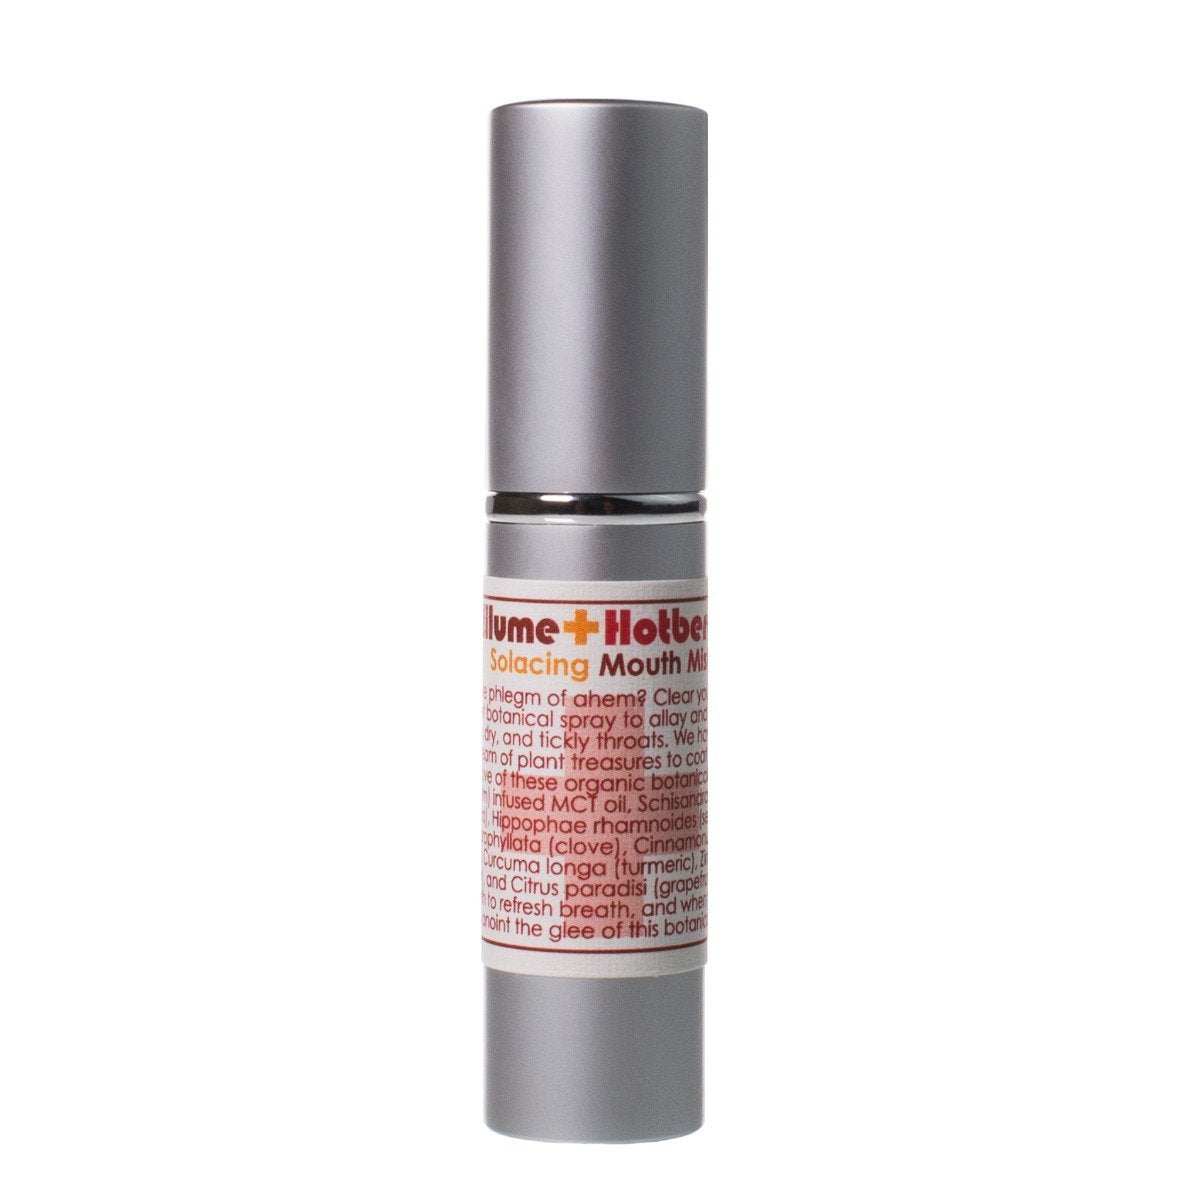 Solacing Mouth Mist - Illume Hotberry